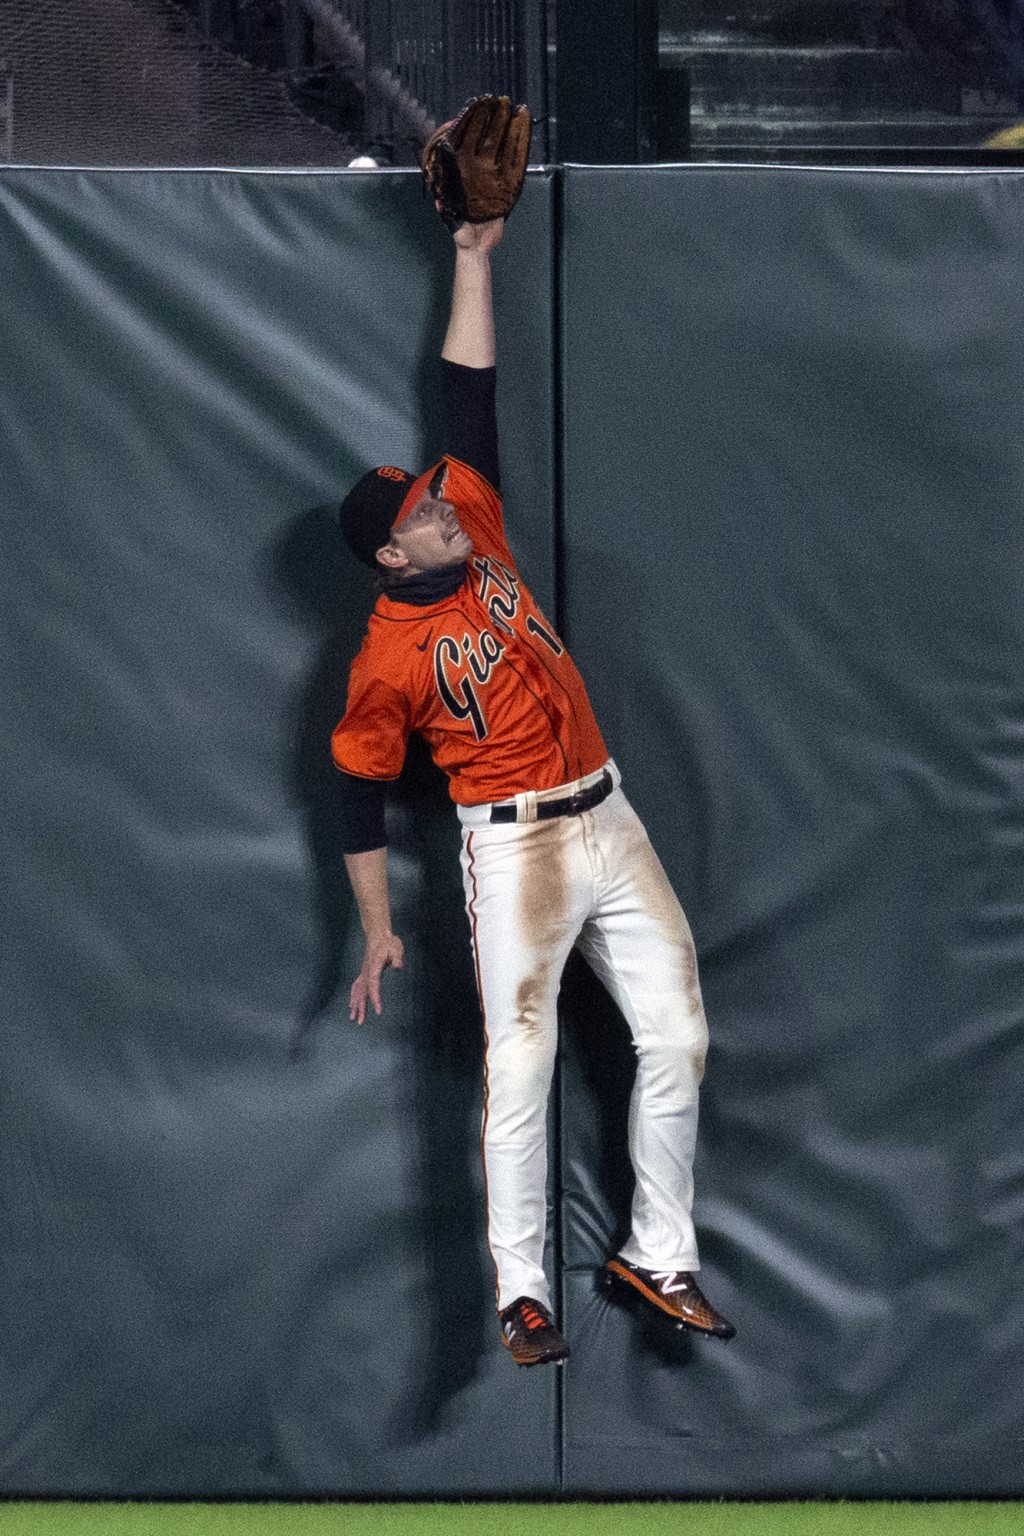 San Francisco Giants center fielder Austin Slater leaps in vain for a two-run home run by San Diego Padres' Trent Grisham's during the sixth inning of...